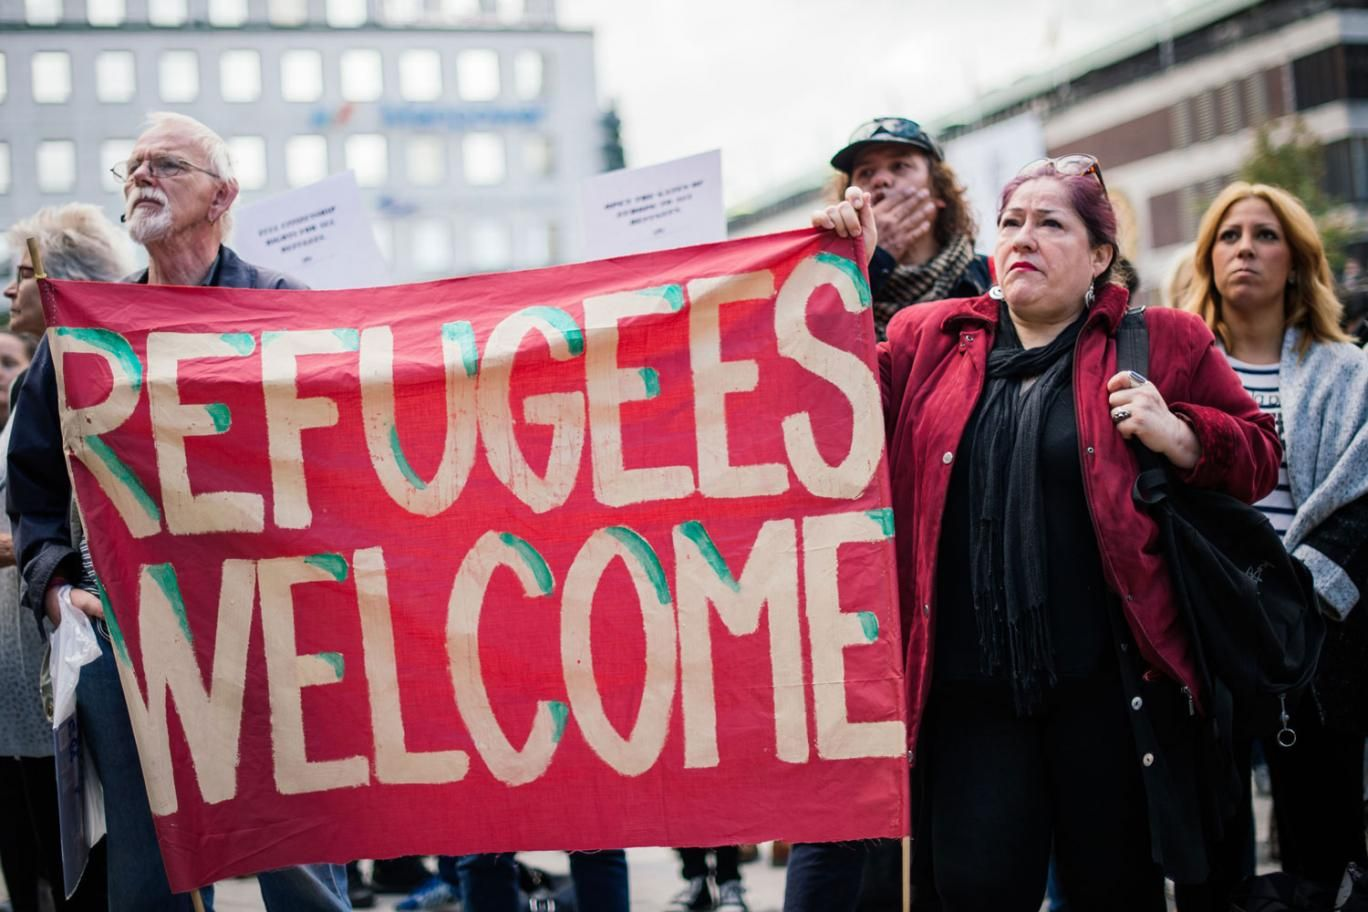 Around 20,000 pro-refugee demonstrators took to the streets on London on September 17, 2016.